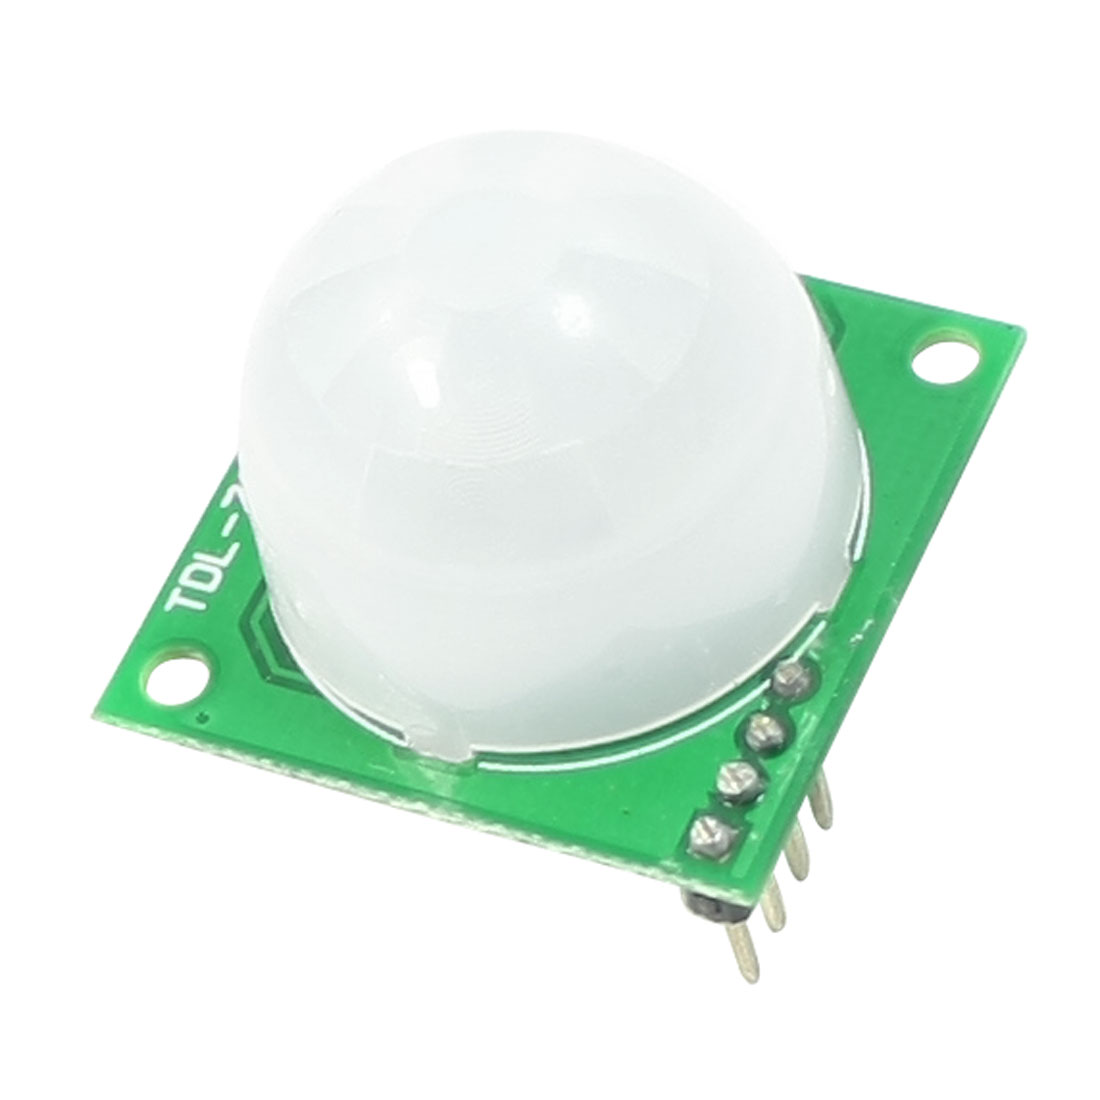 TDL-708-V1 Model Wall Mounting Pir Motion Sensor Module DC 1-8V